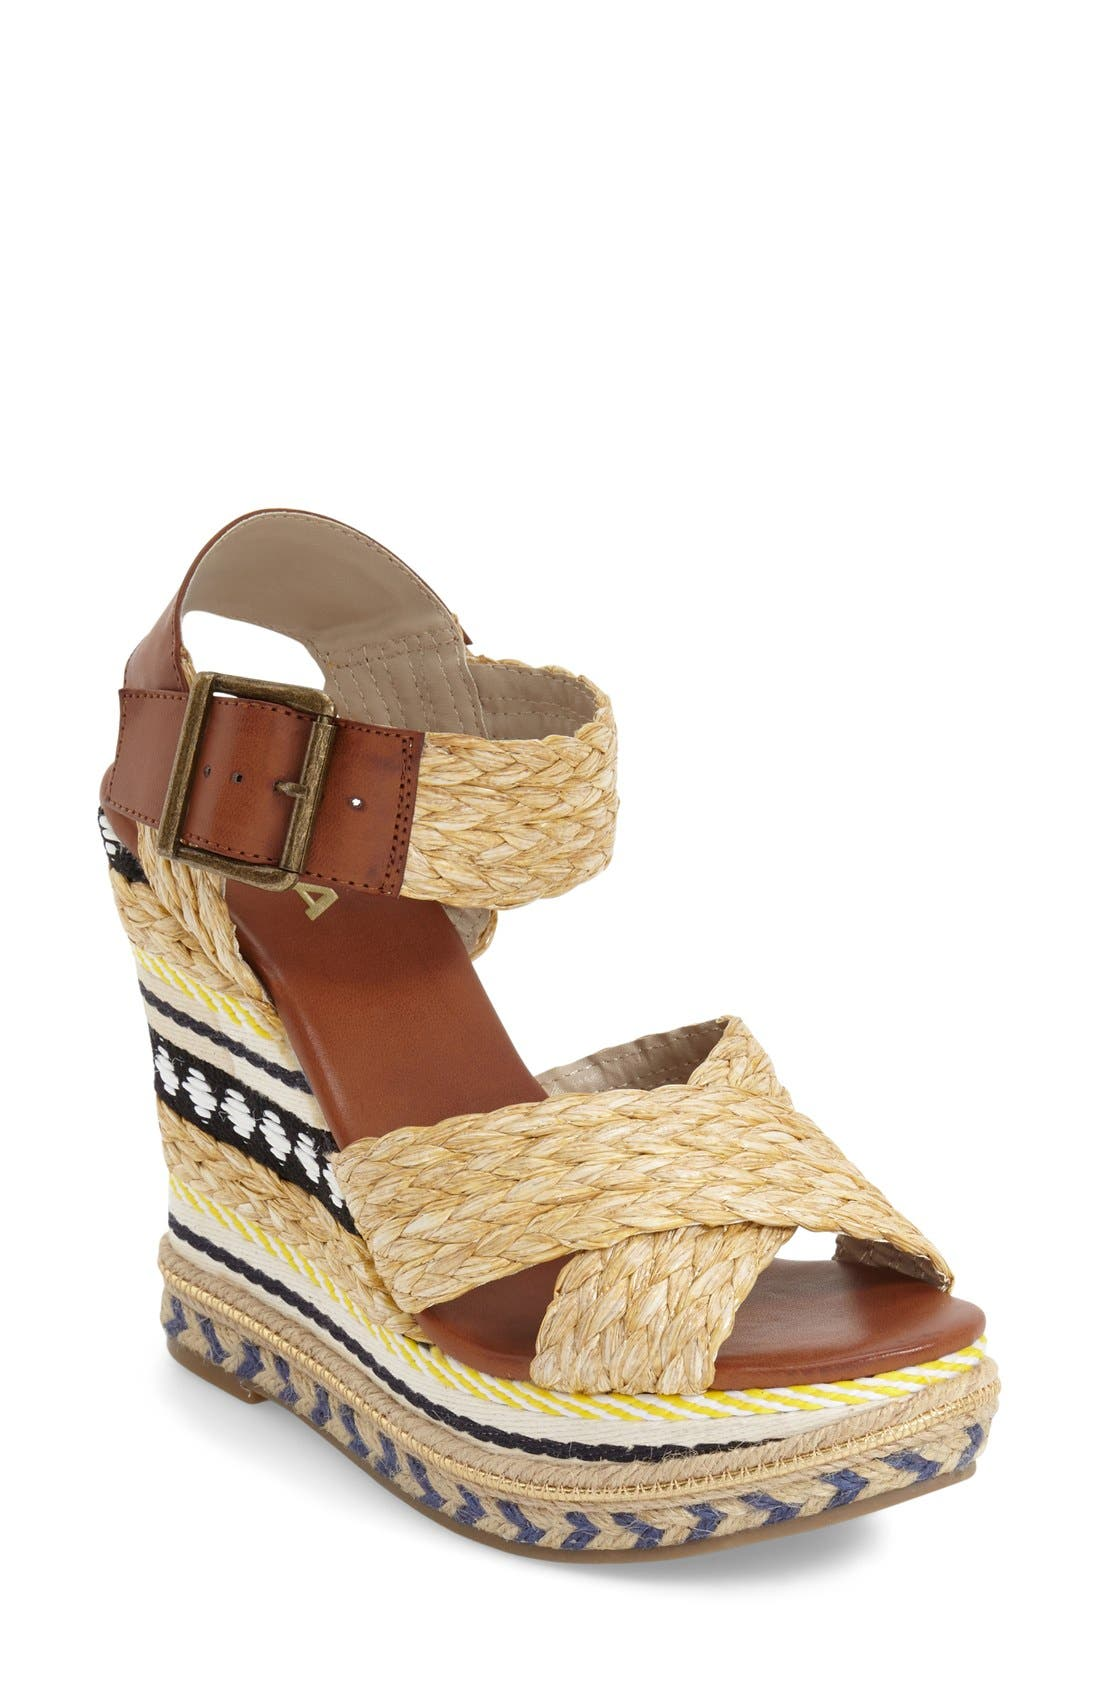 Main Image - MIA 'Fareena' Platform Wedge Sandal (Women)